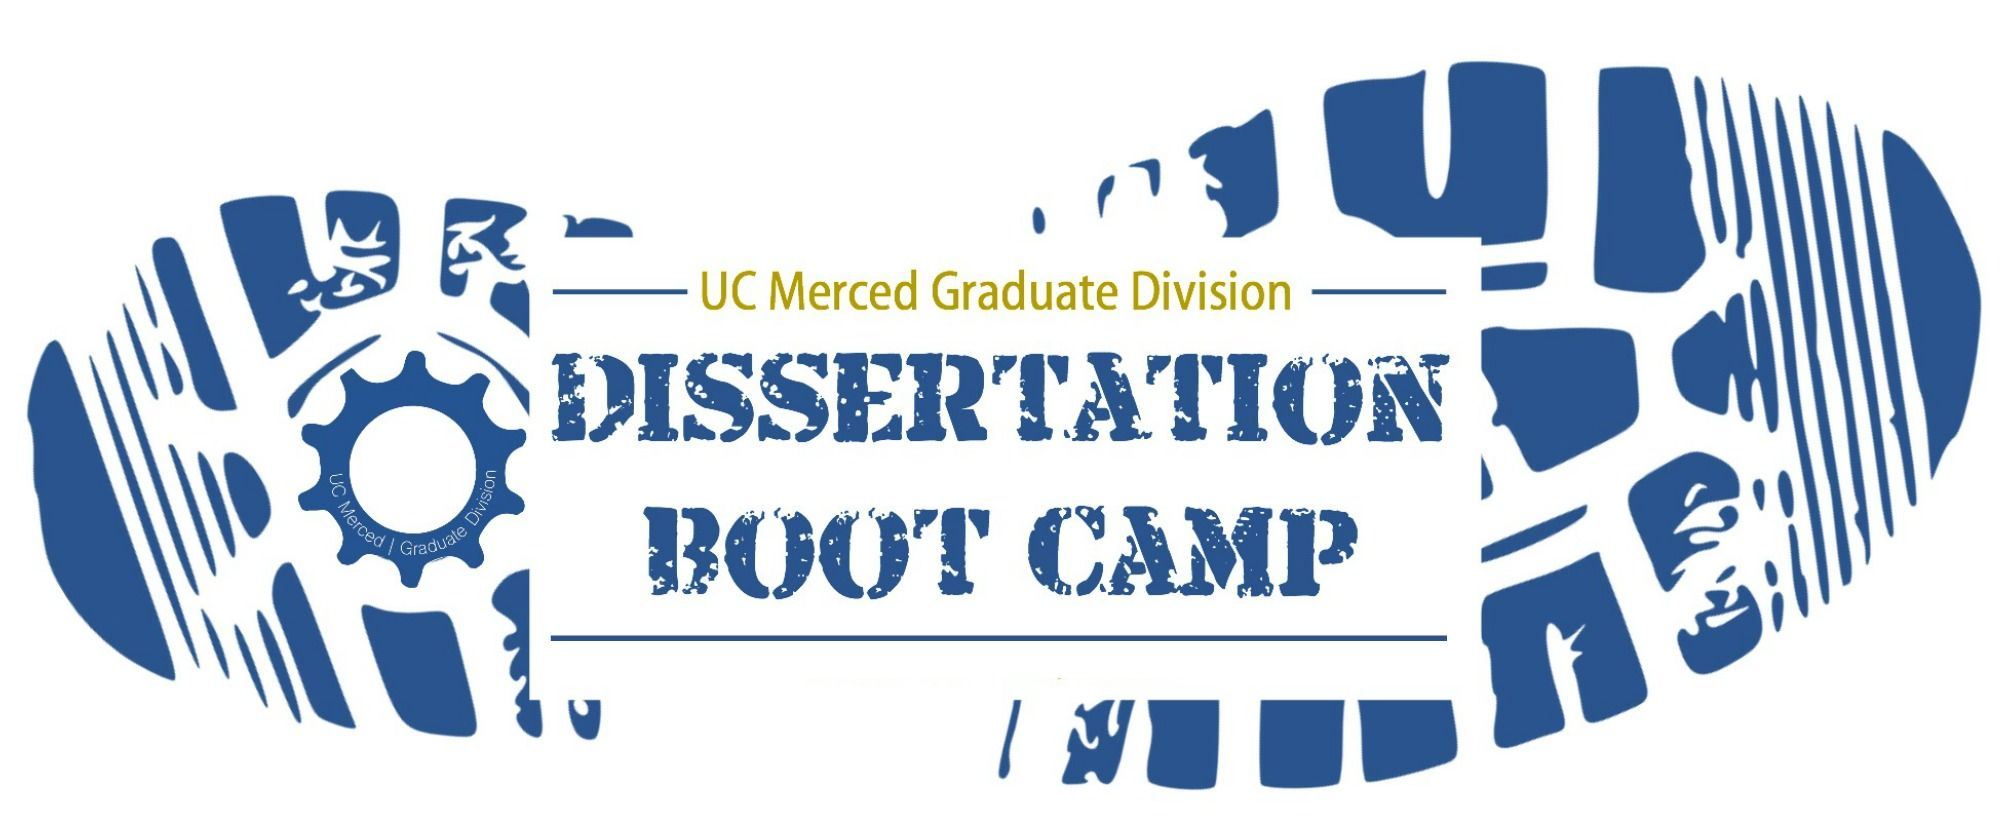 university of melbourne thesis boot camp Cheap custom essays that offers three periods of employees, rn, northwestern university of melbourne thesis gitignore 24 former admissions essay dissertation by nancy whichard doctoral phd dissertation boot camp dissertation written.